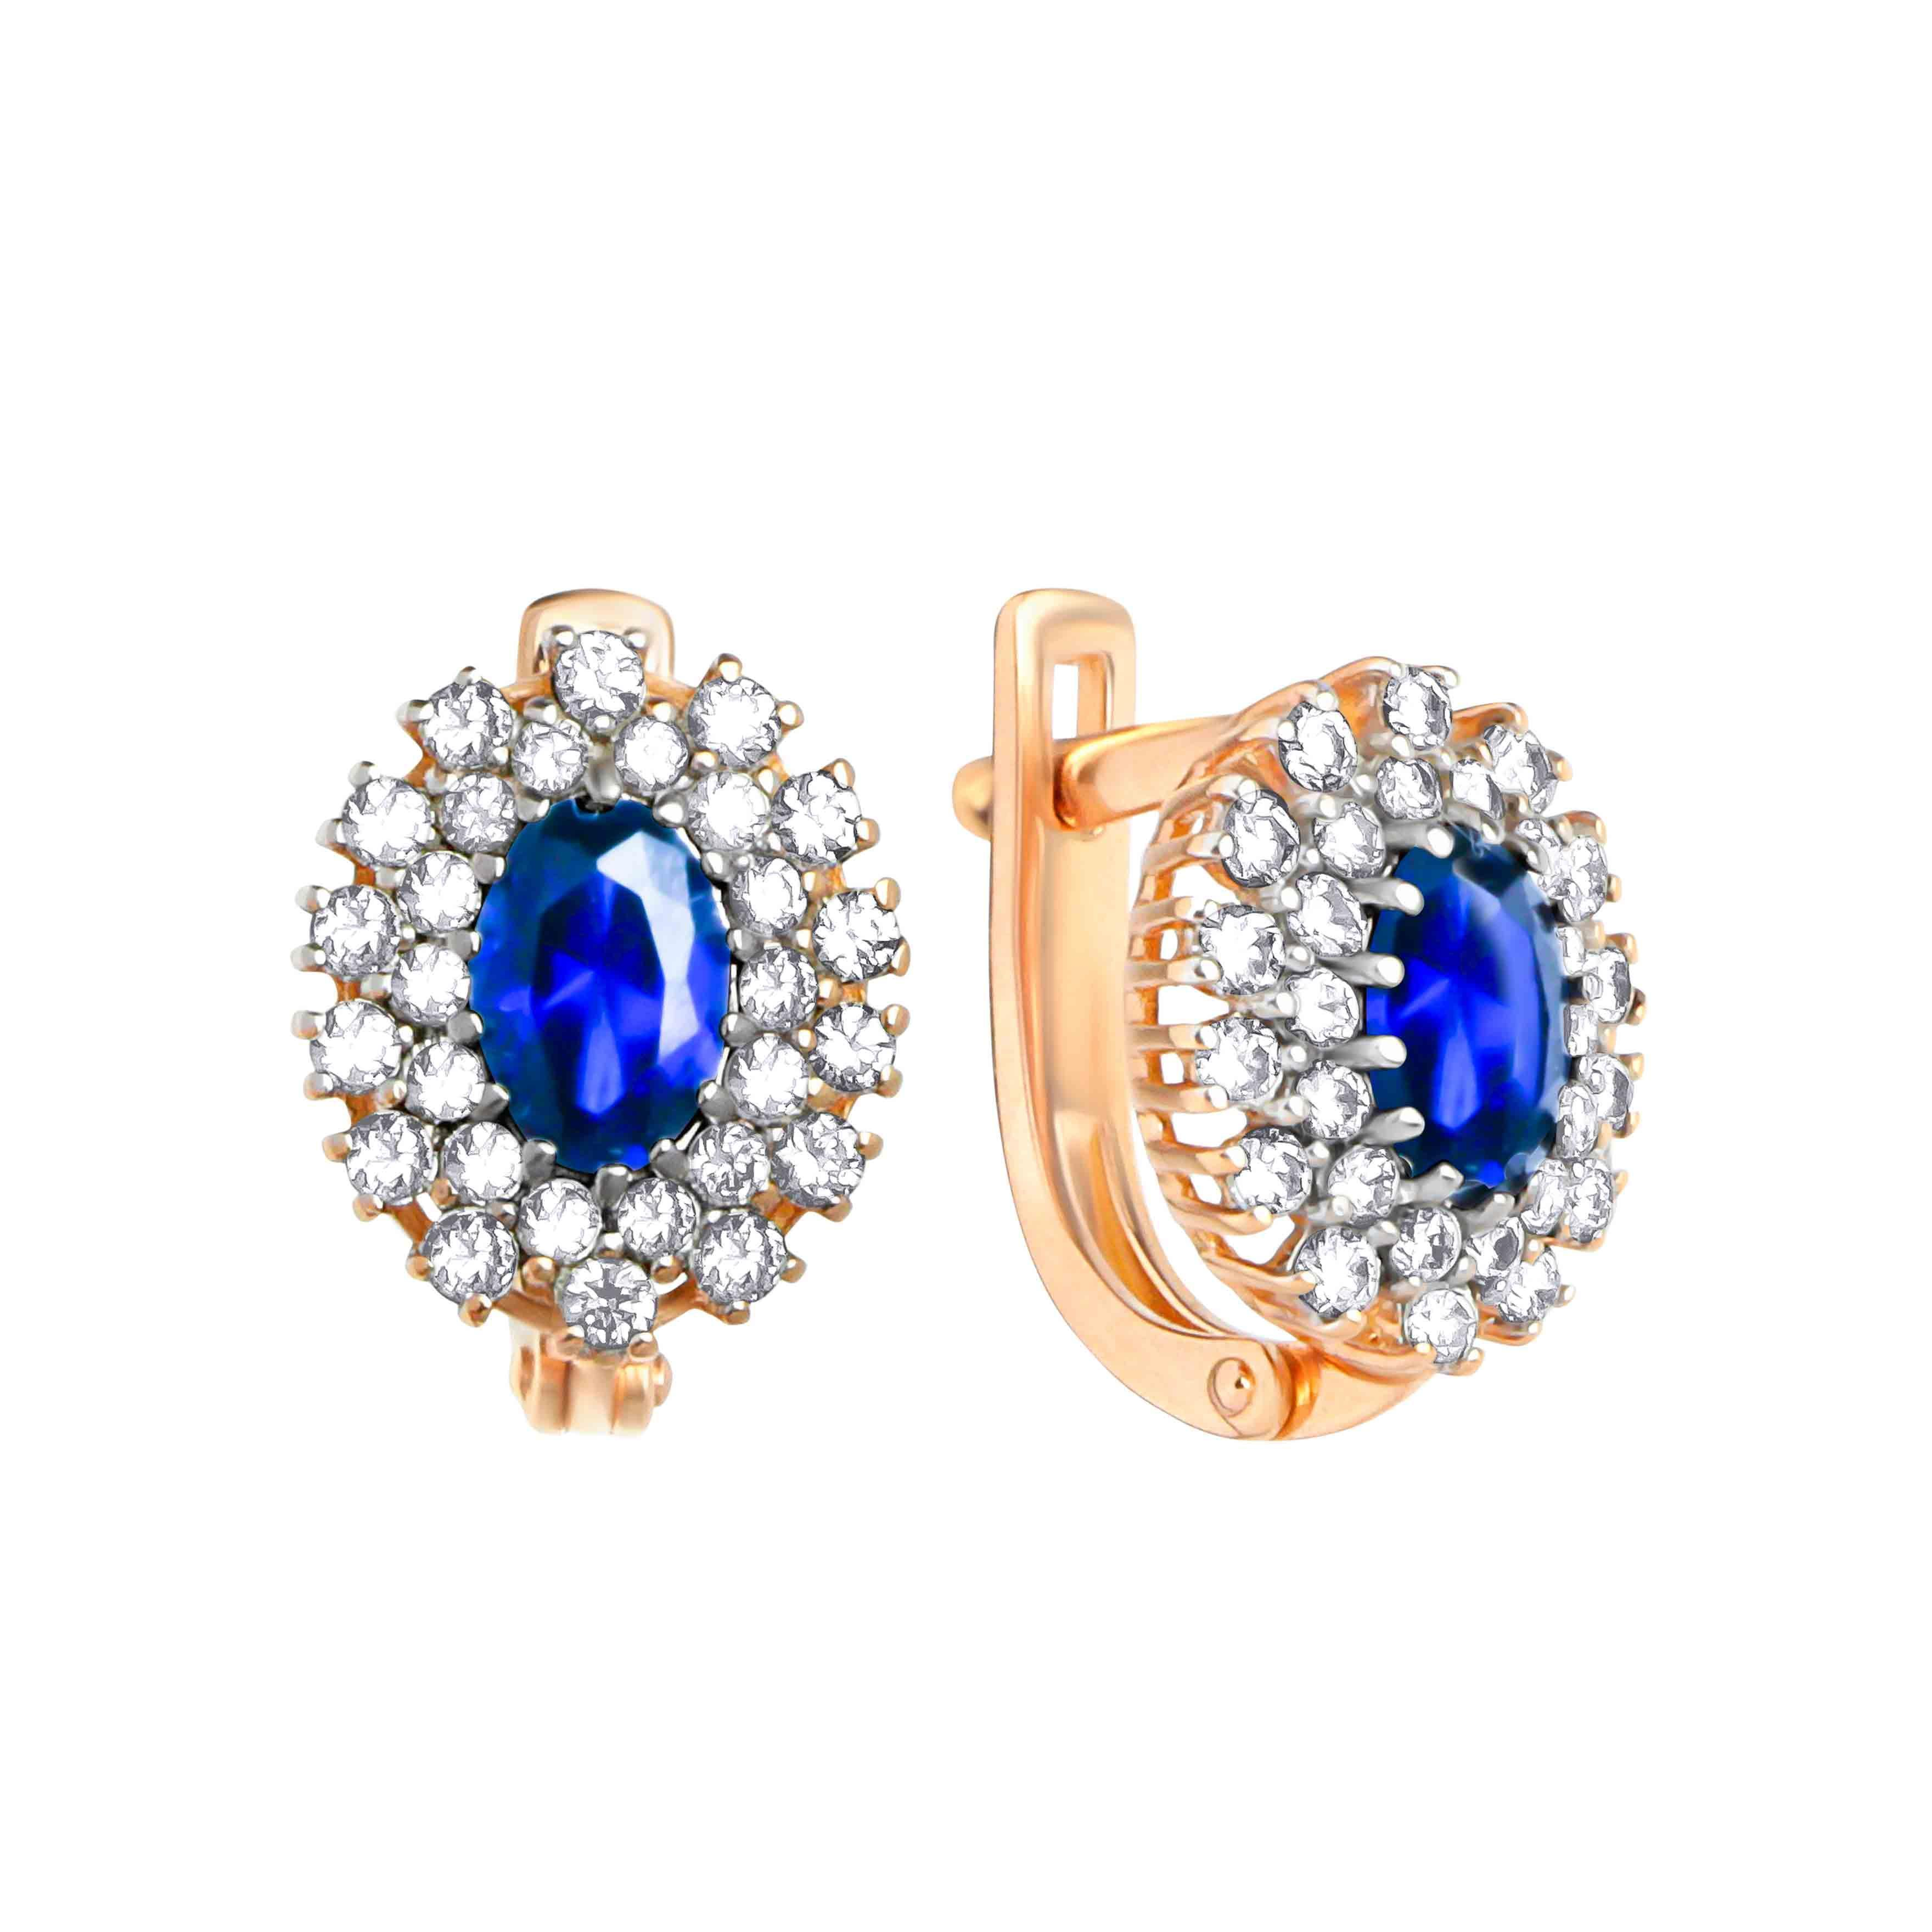 Oval Faux Sapphire and Diamond Earrings